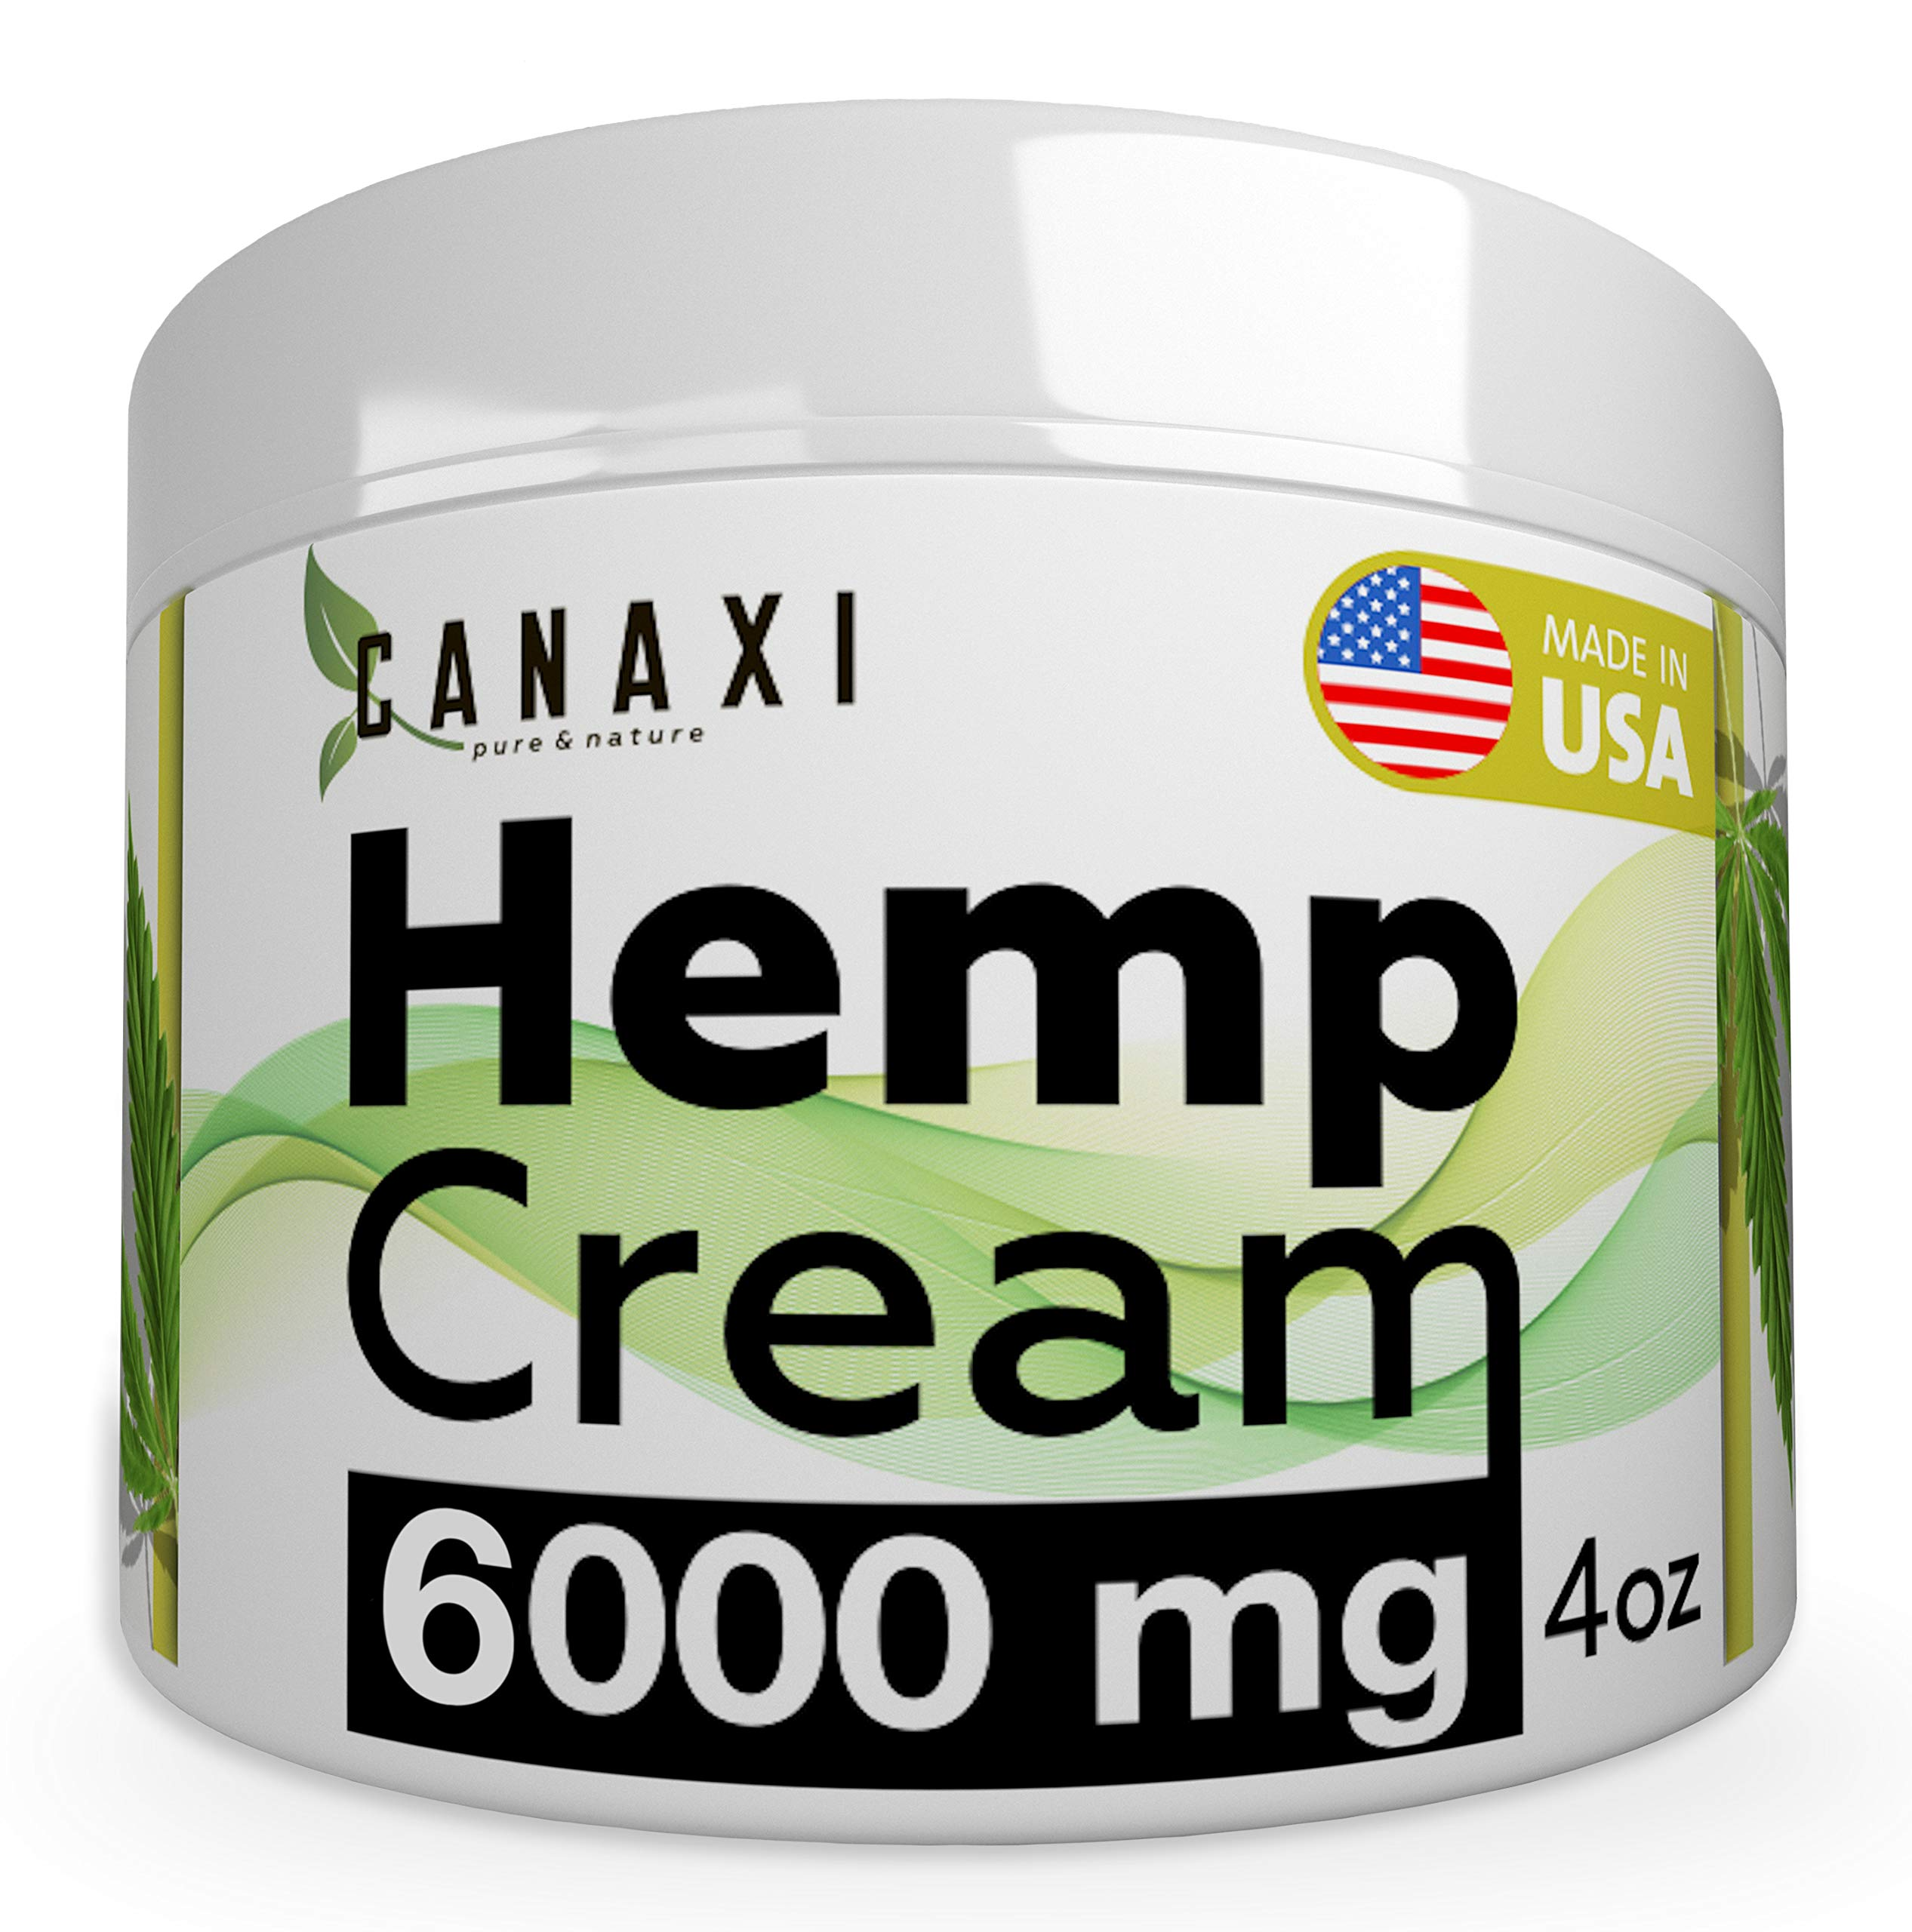 Natural Hemp Extract Pain Relief Cream 6000MG - 4oz- Hemp Salve Essential Gel Arnica Inflammation Arthritis, Knee, Joint & Back Pain Muscle Pain Relief - Made in USA - EMU Oil - Skin Ointment Balm by Canaxi